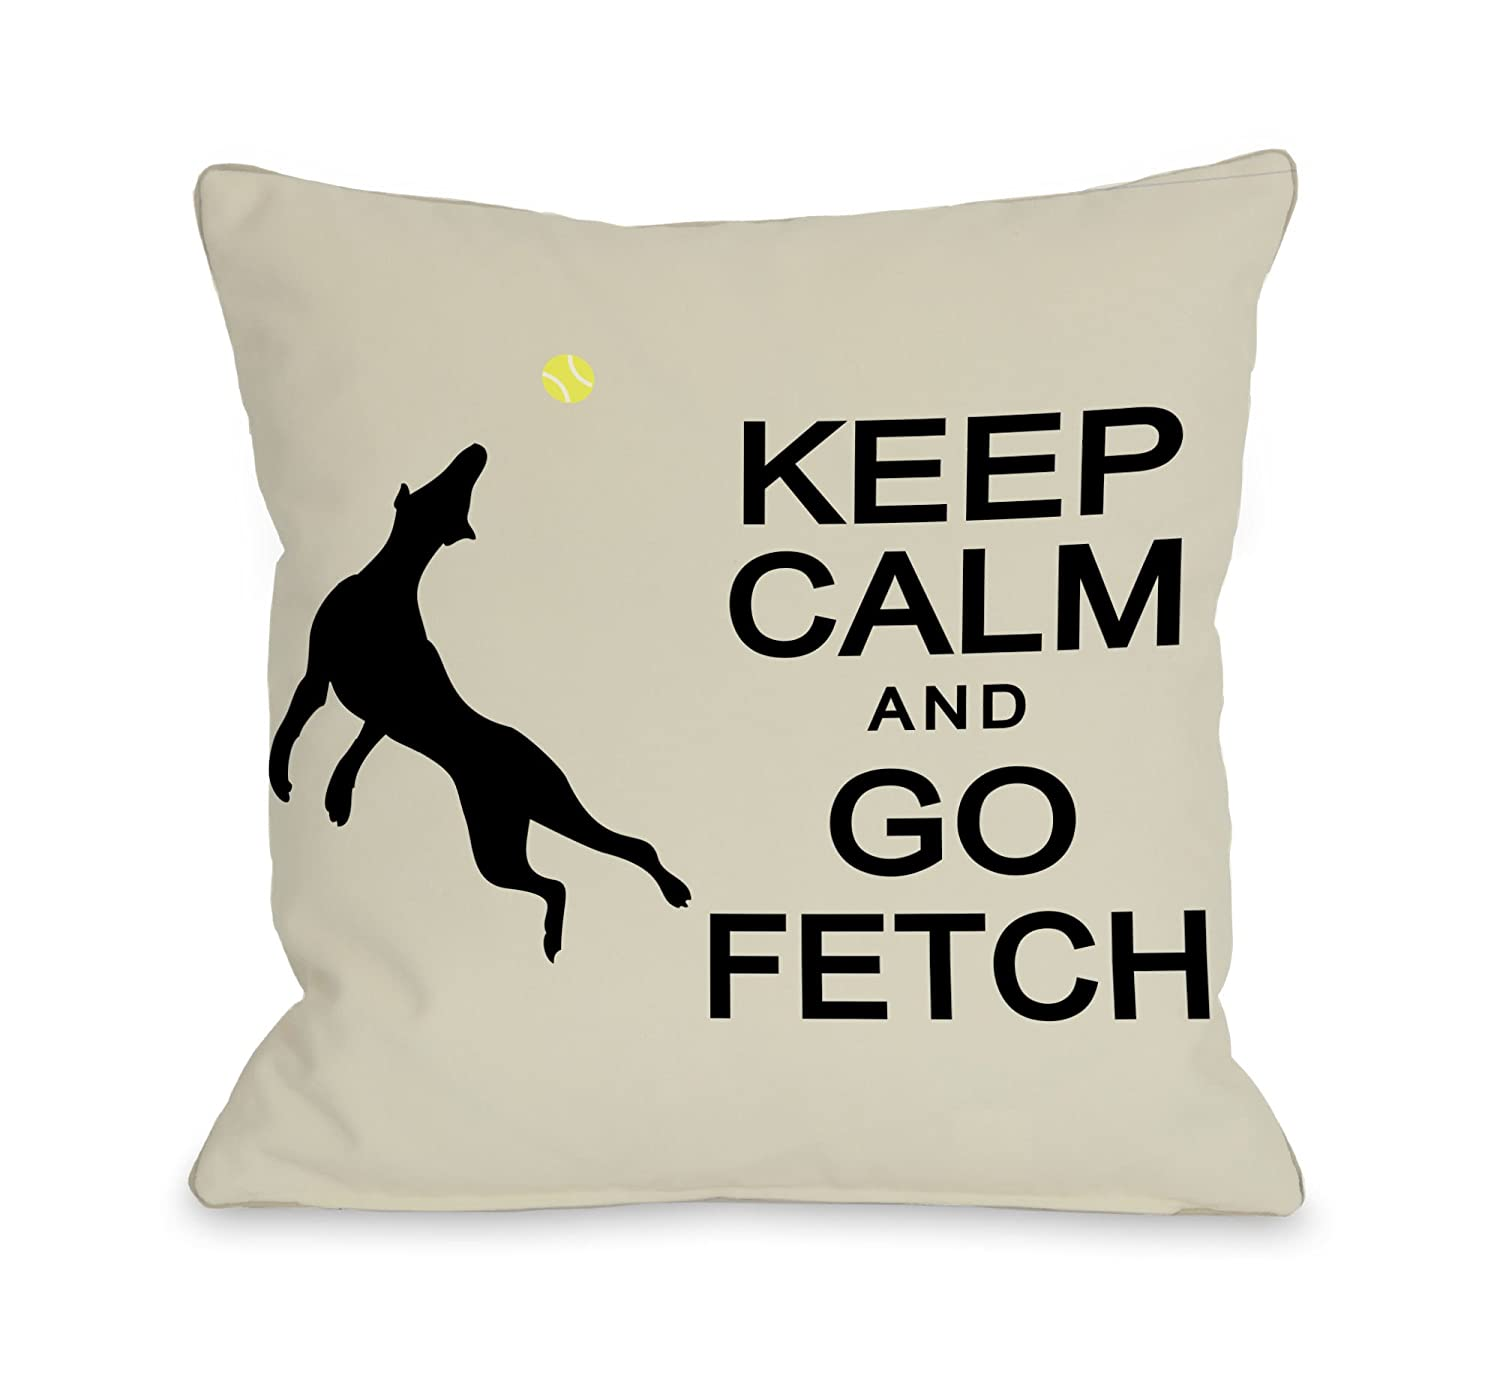 16 by 16-Inch Bentin Pet Décor 10209PL16 One Bella Casa Keep Calm and Go Fetch Pillow